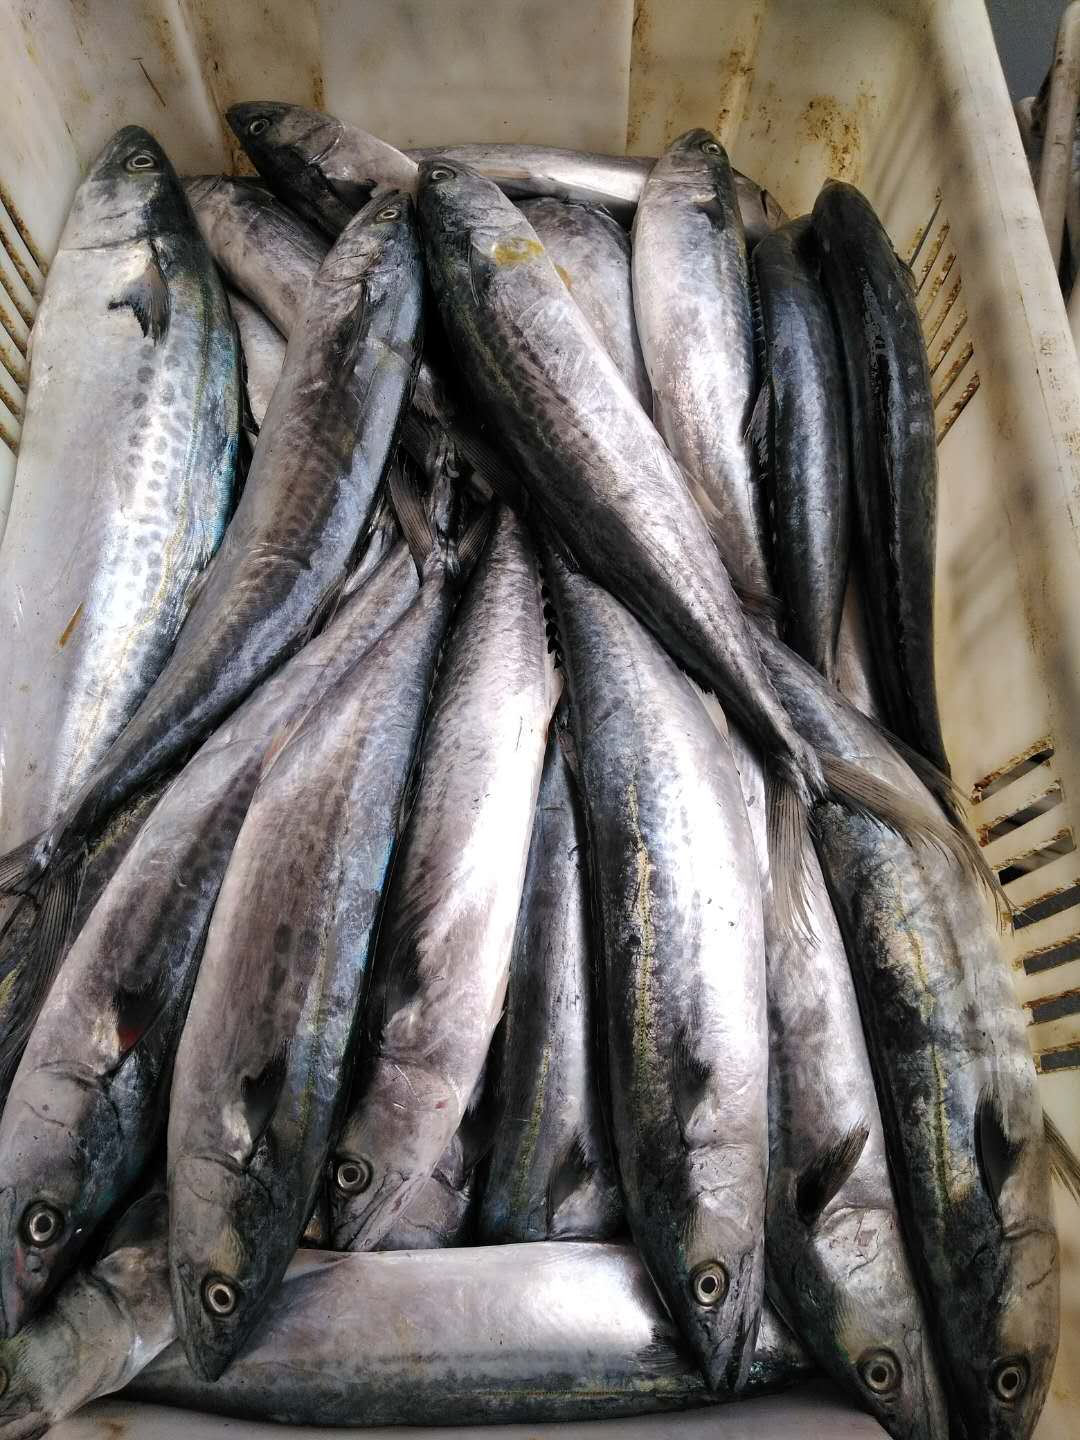 Frozen spanish mackerel I.Q.F.